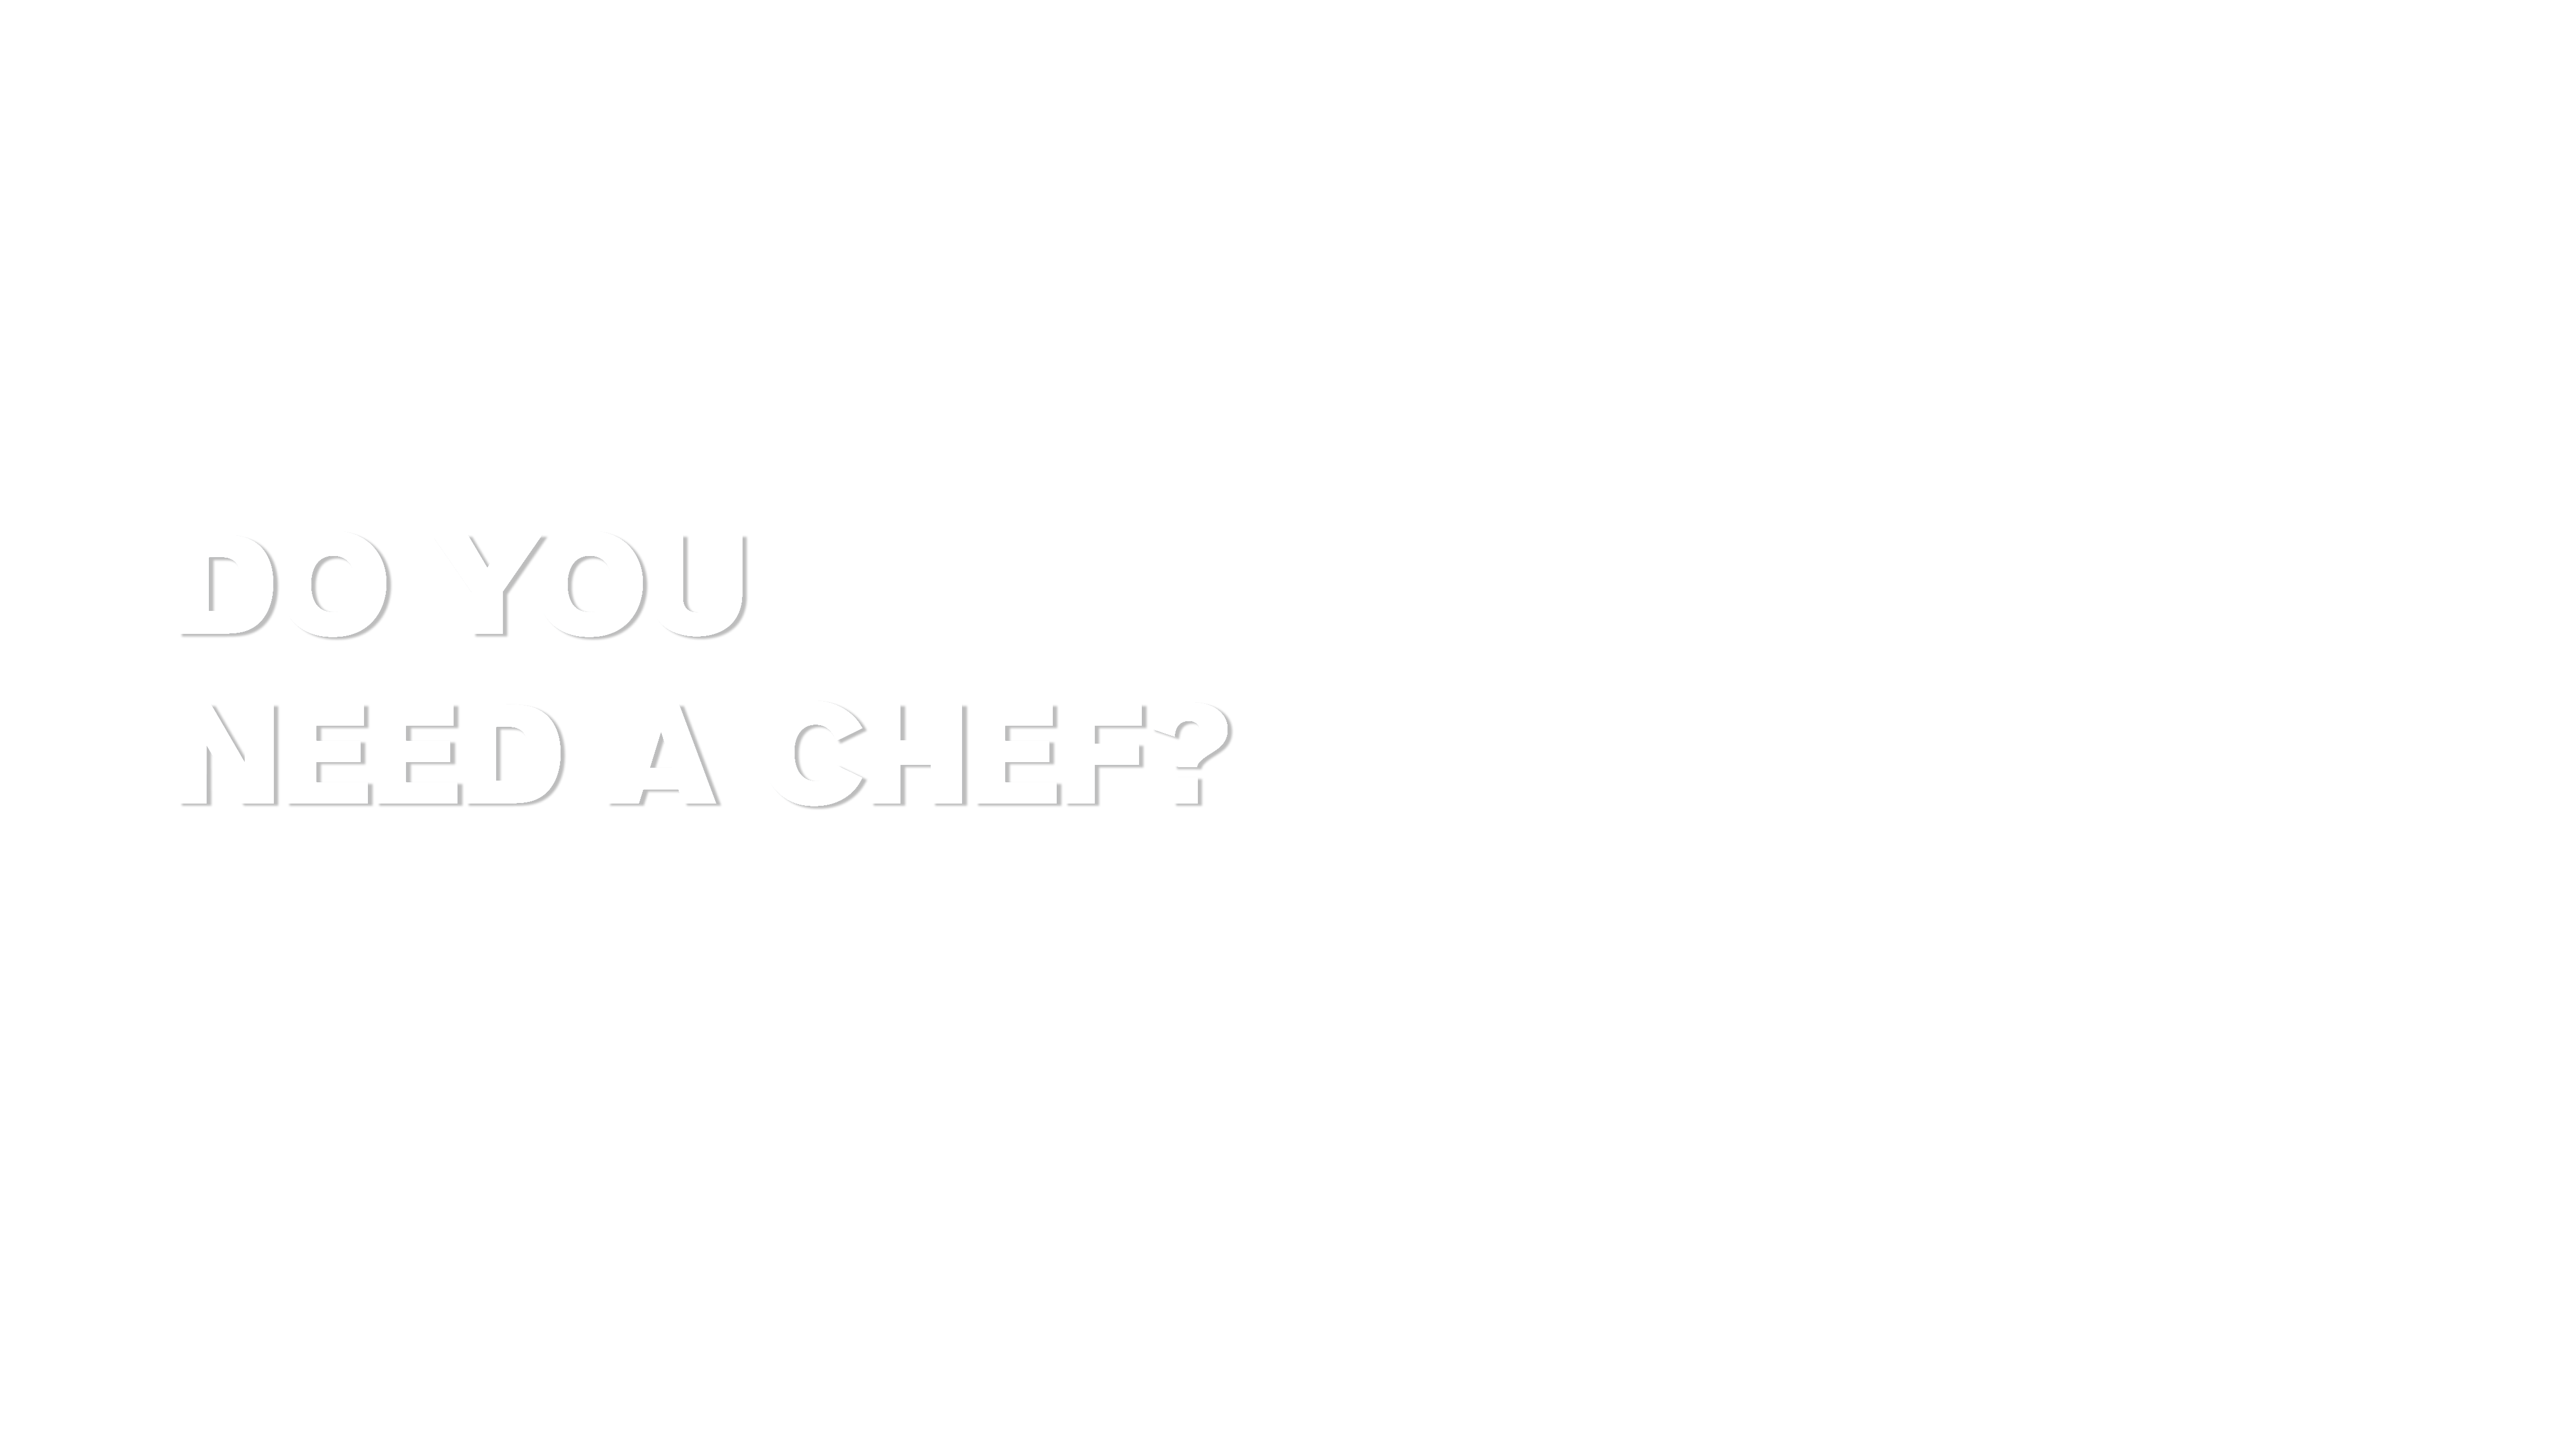 DO YOU NEED A CHEF